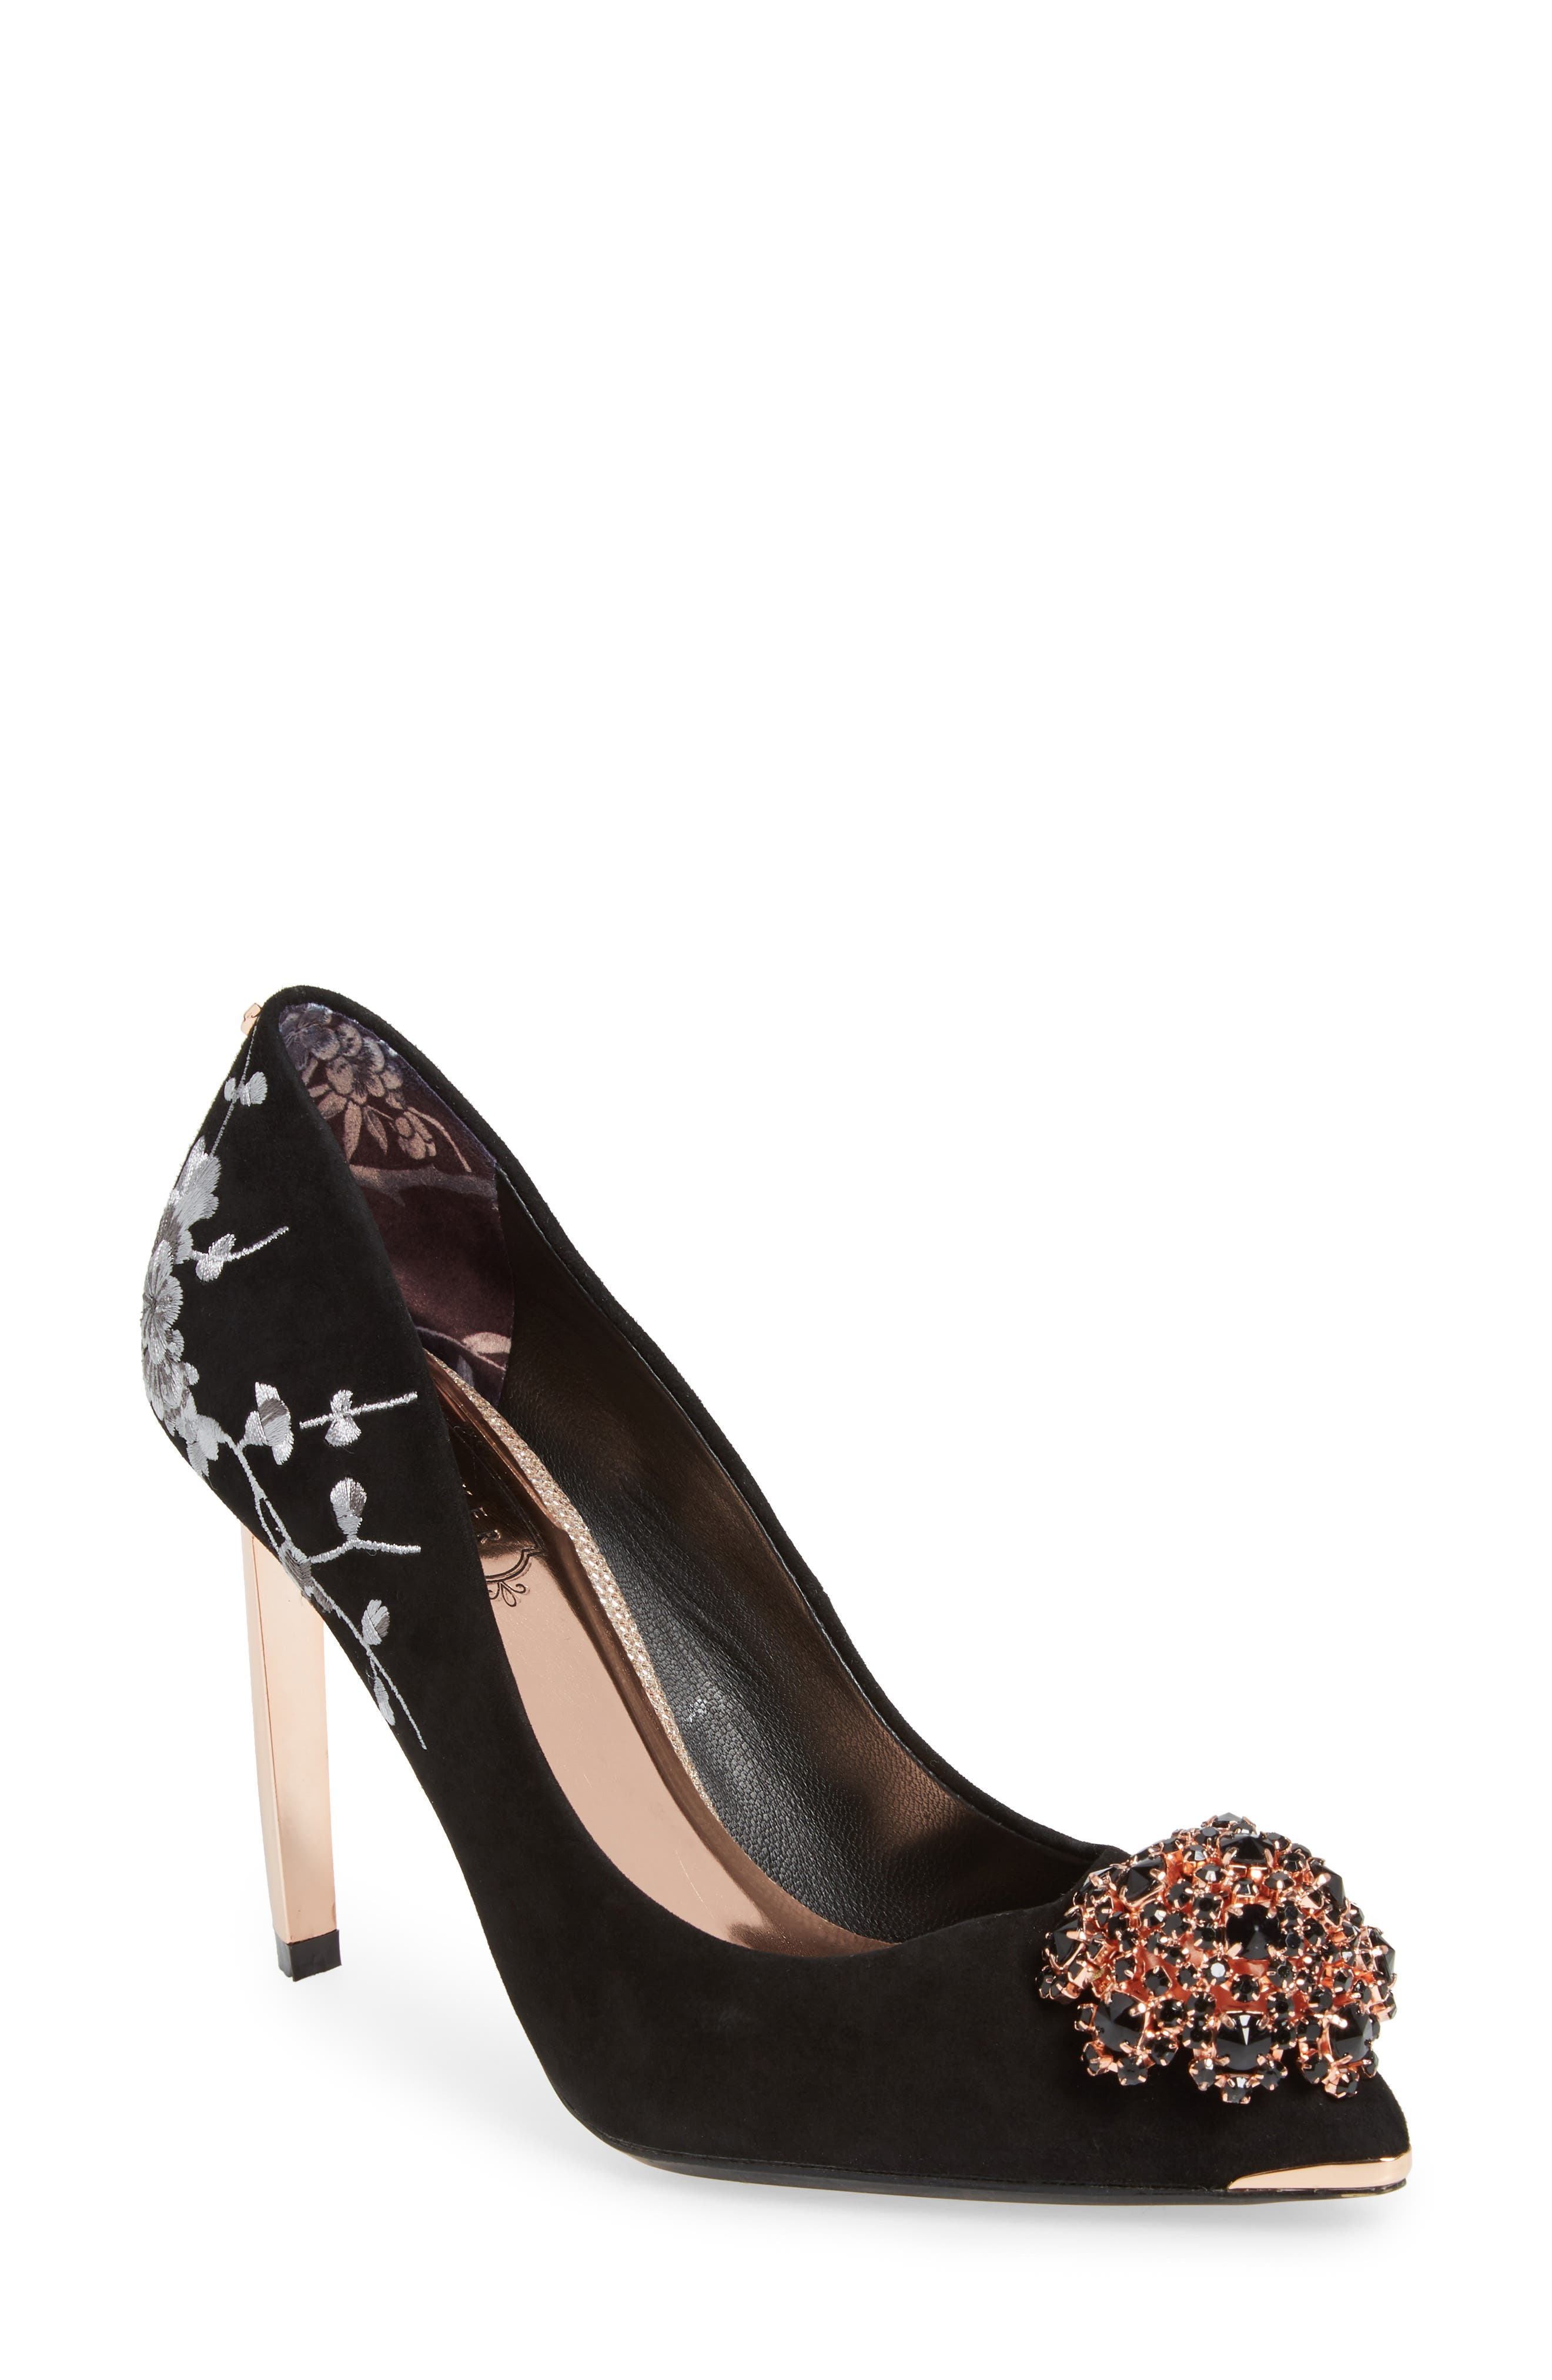 Peetchv Embroidered Pump,                             Main thumbnail 1, color,                             BLACK SUEDE